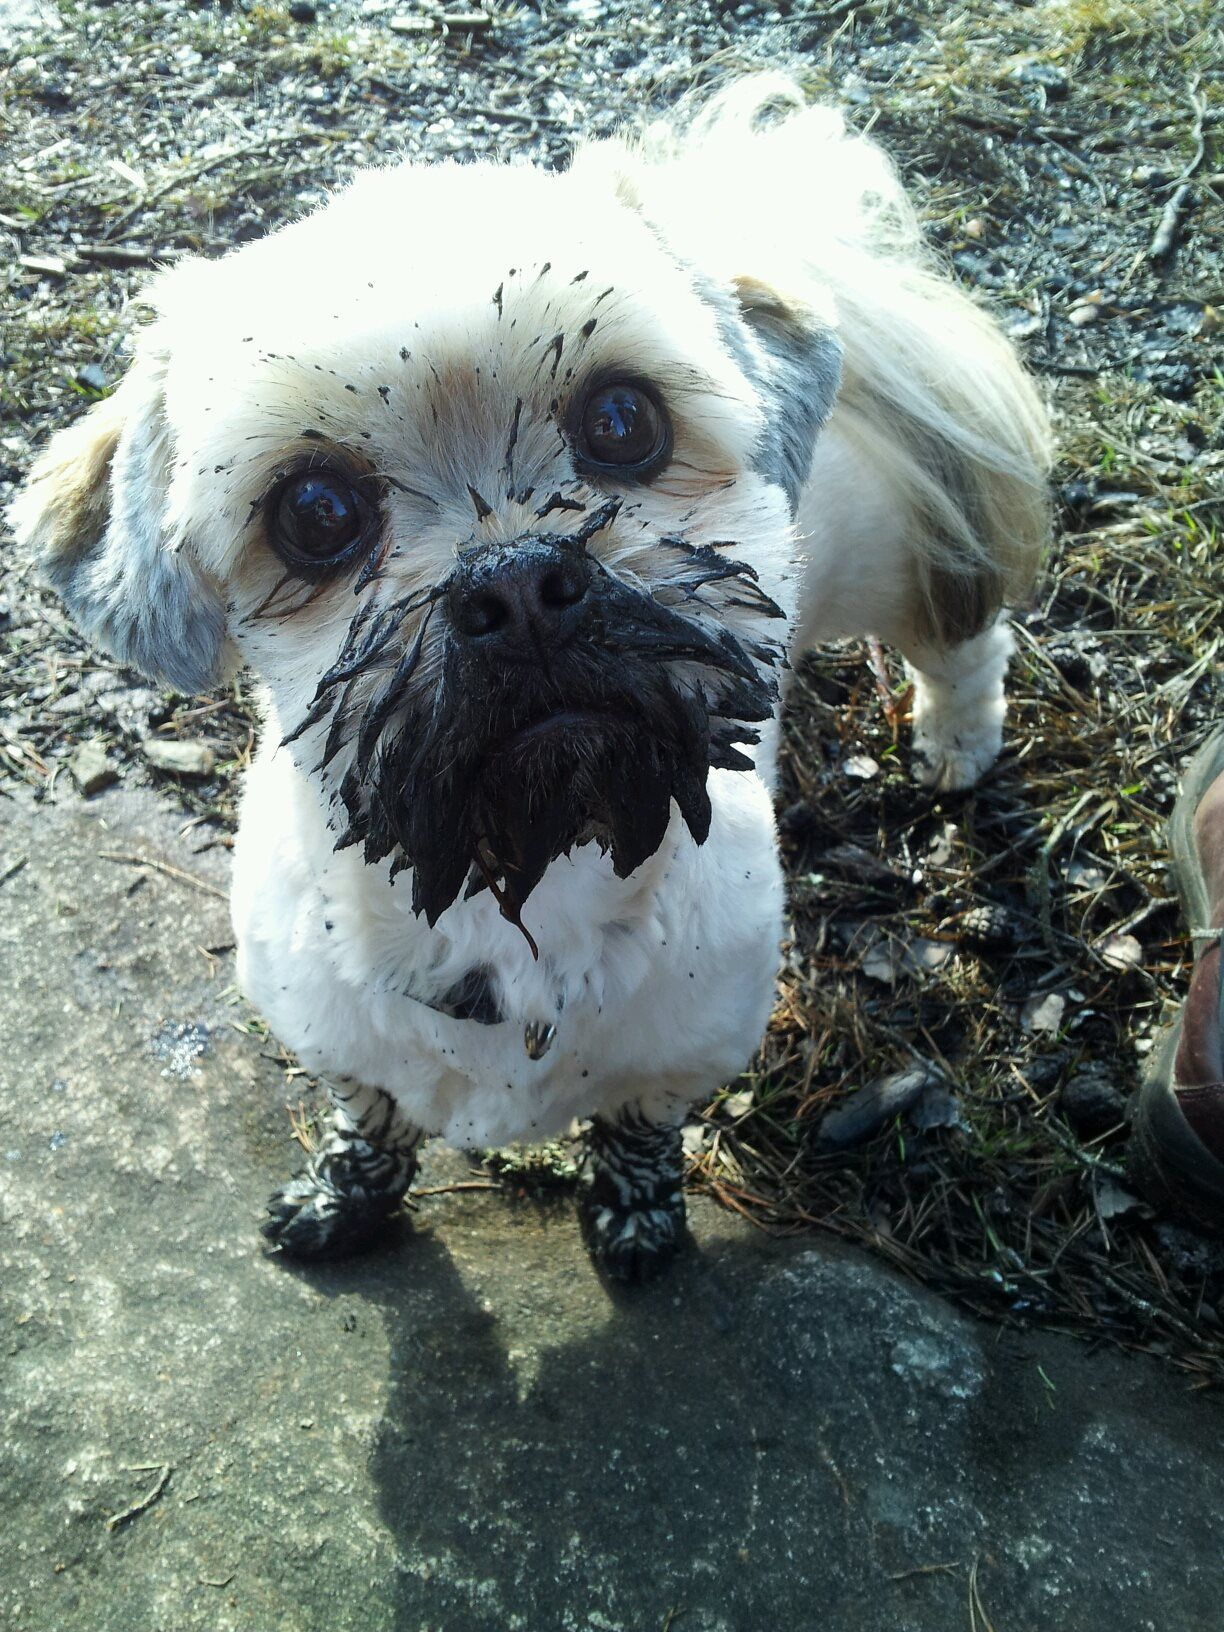 Easy the lhasa apso could not fathom why I denied cuddling after she went frog hunting in the mud…